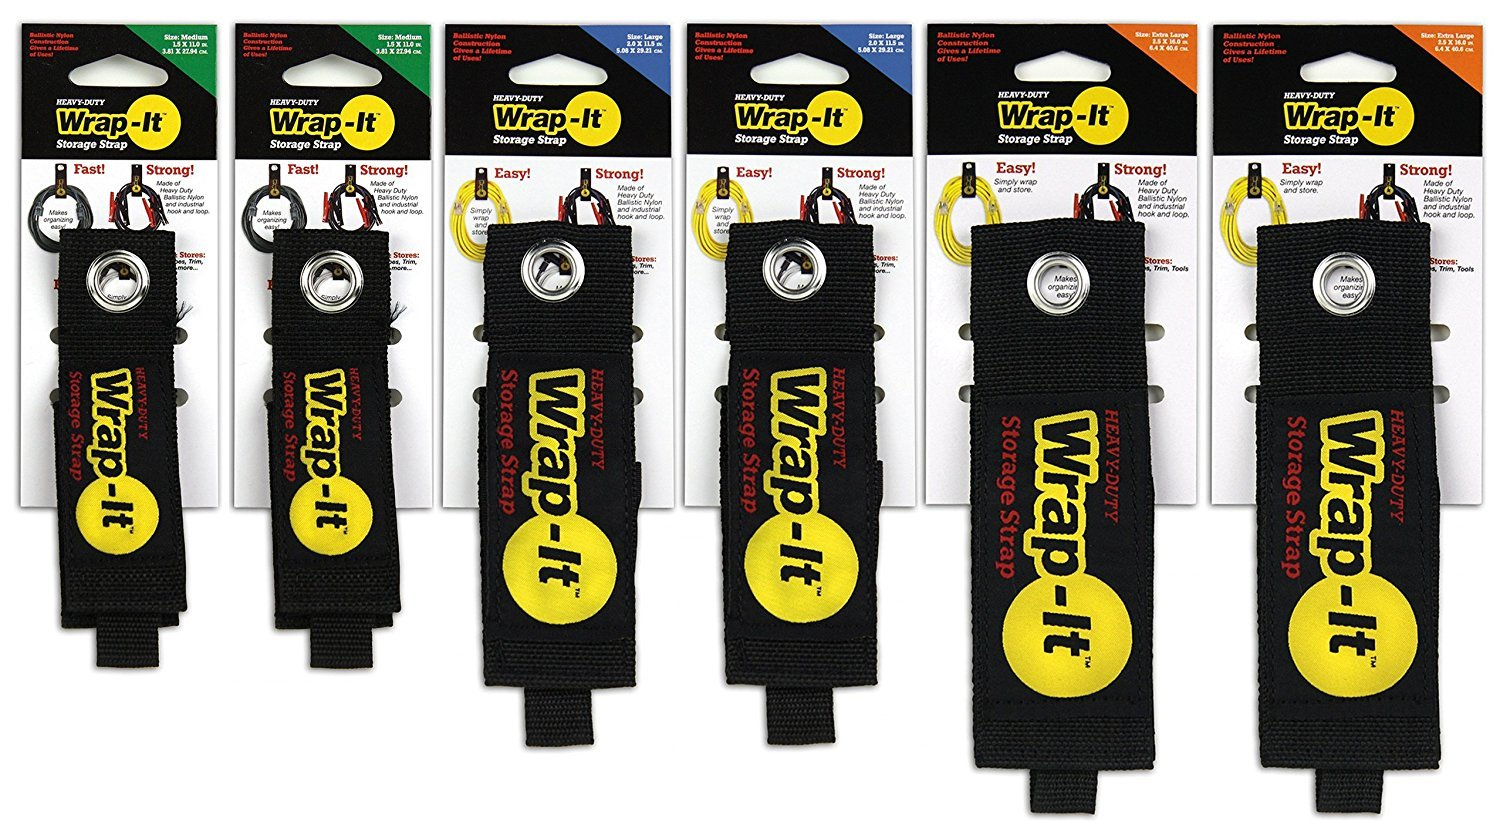 (6 Pack Medium) - Wrap-It Storage Straps (6 Pack Medium) Hook and Loop Organiser for Extension Cords Hoses Rope Cables Lights for Home Garage Shop Truck RV Boat B01N4SI8RJ 12926 6 Pack Medium  6 Pack Medium